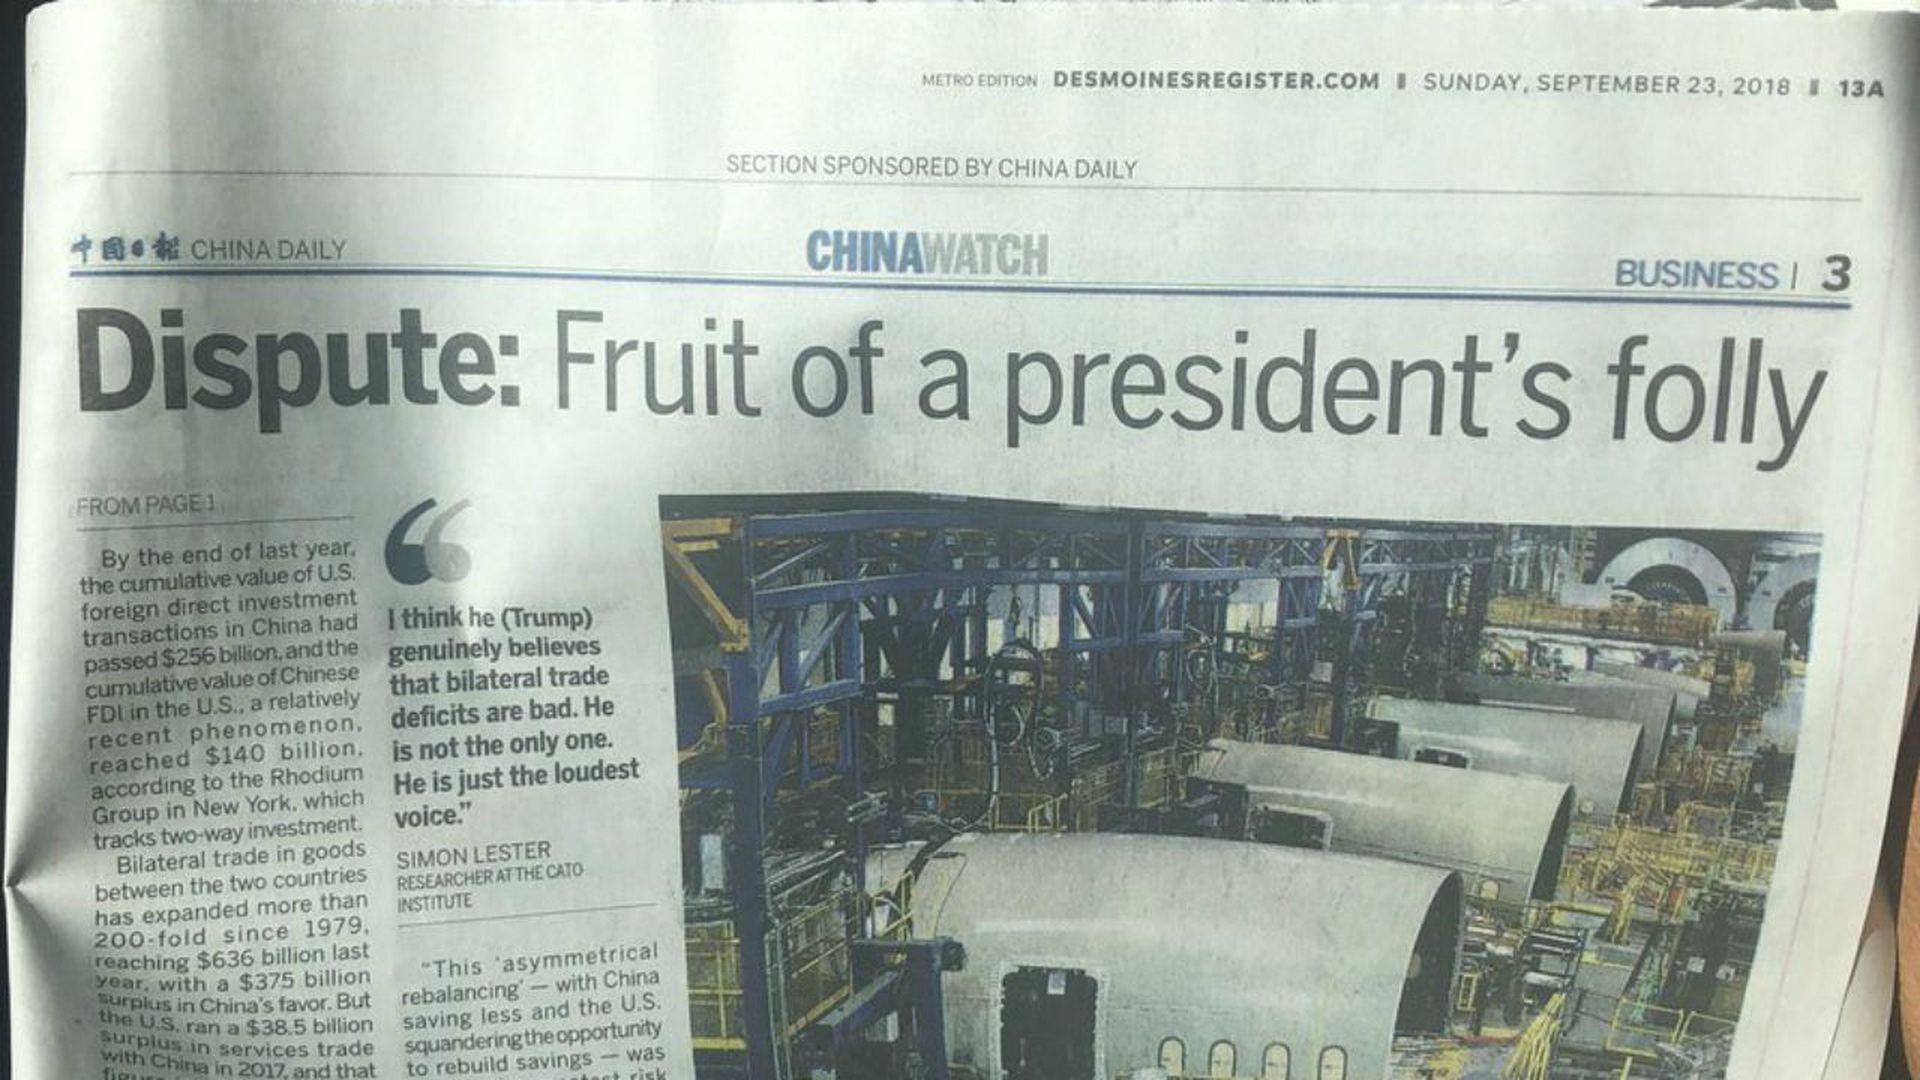 China ad in Des Moines Register